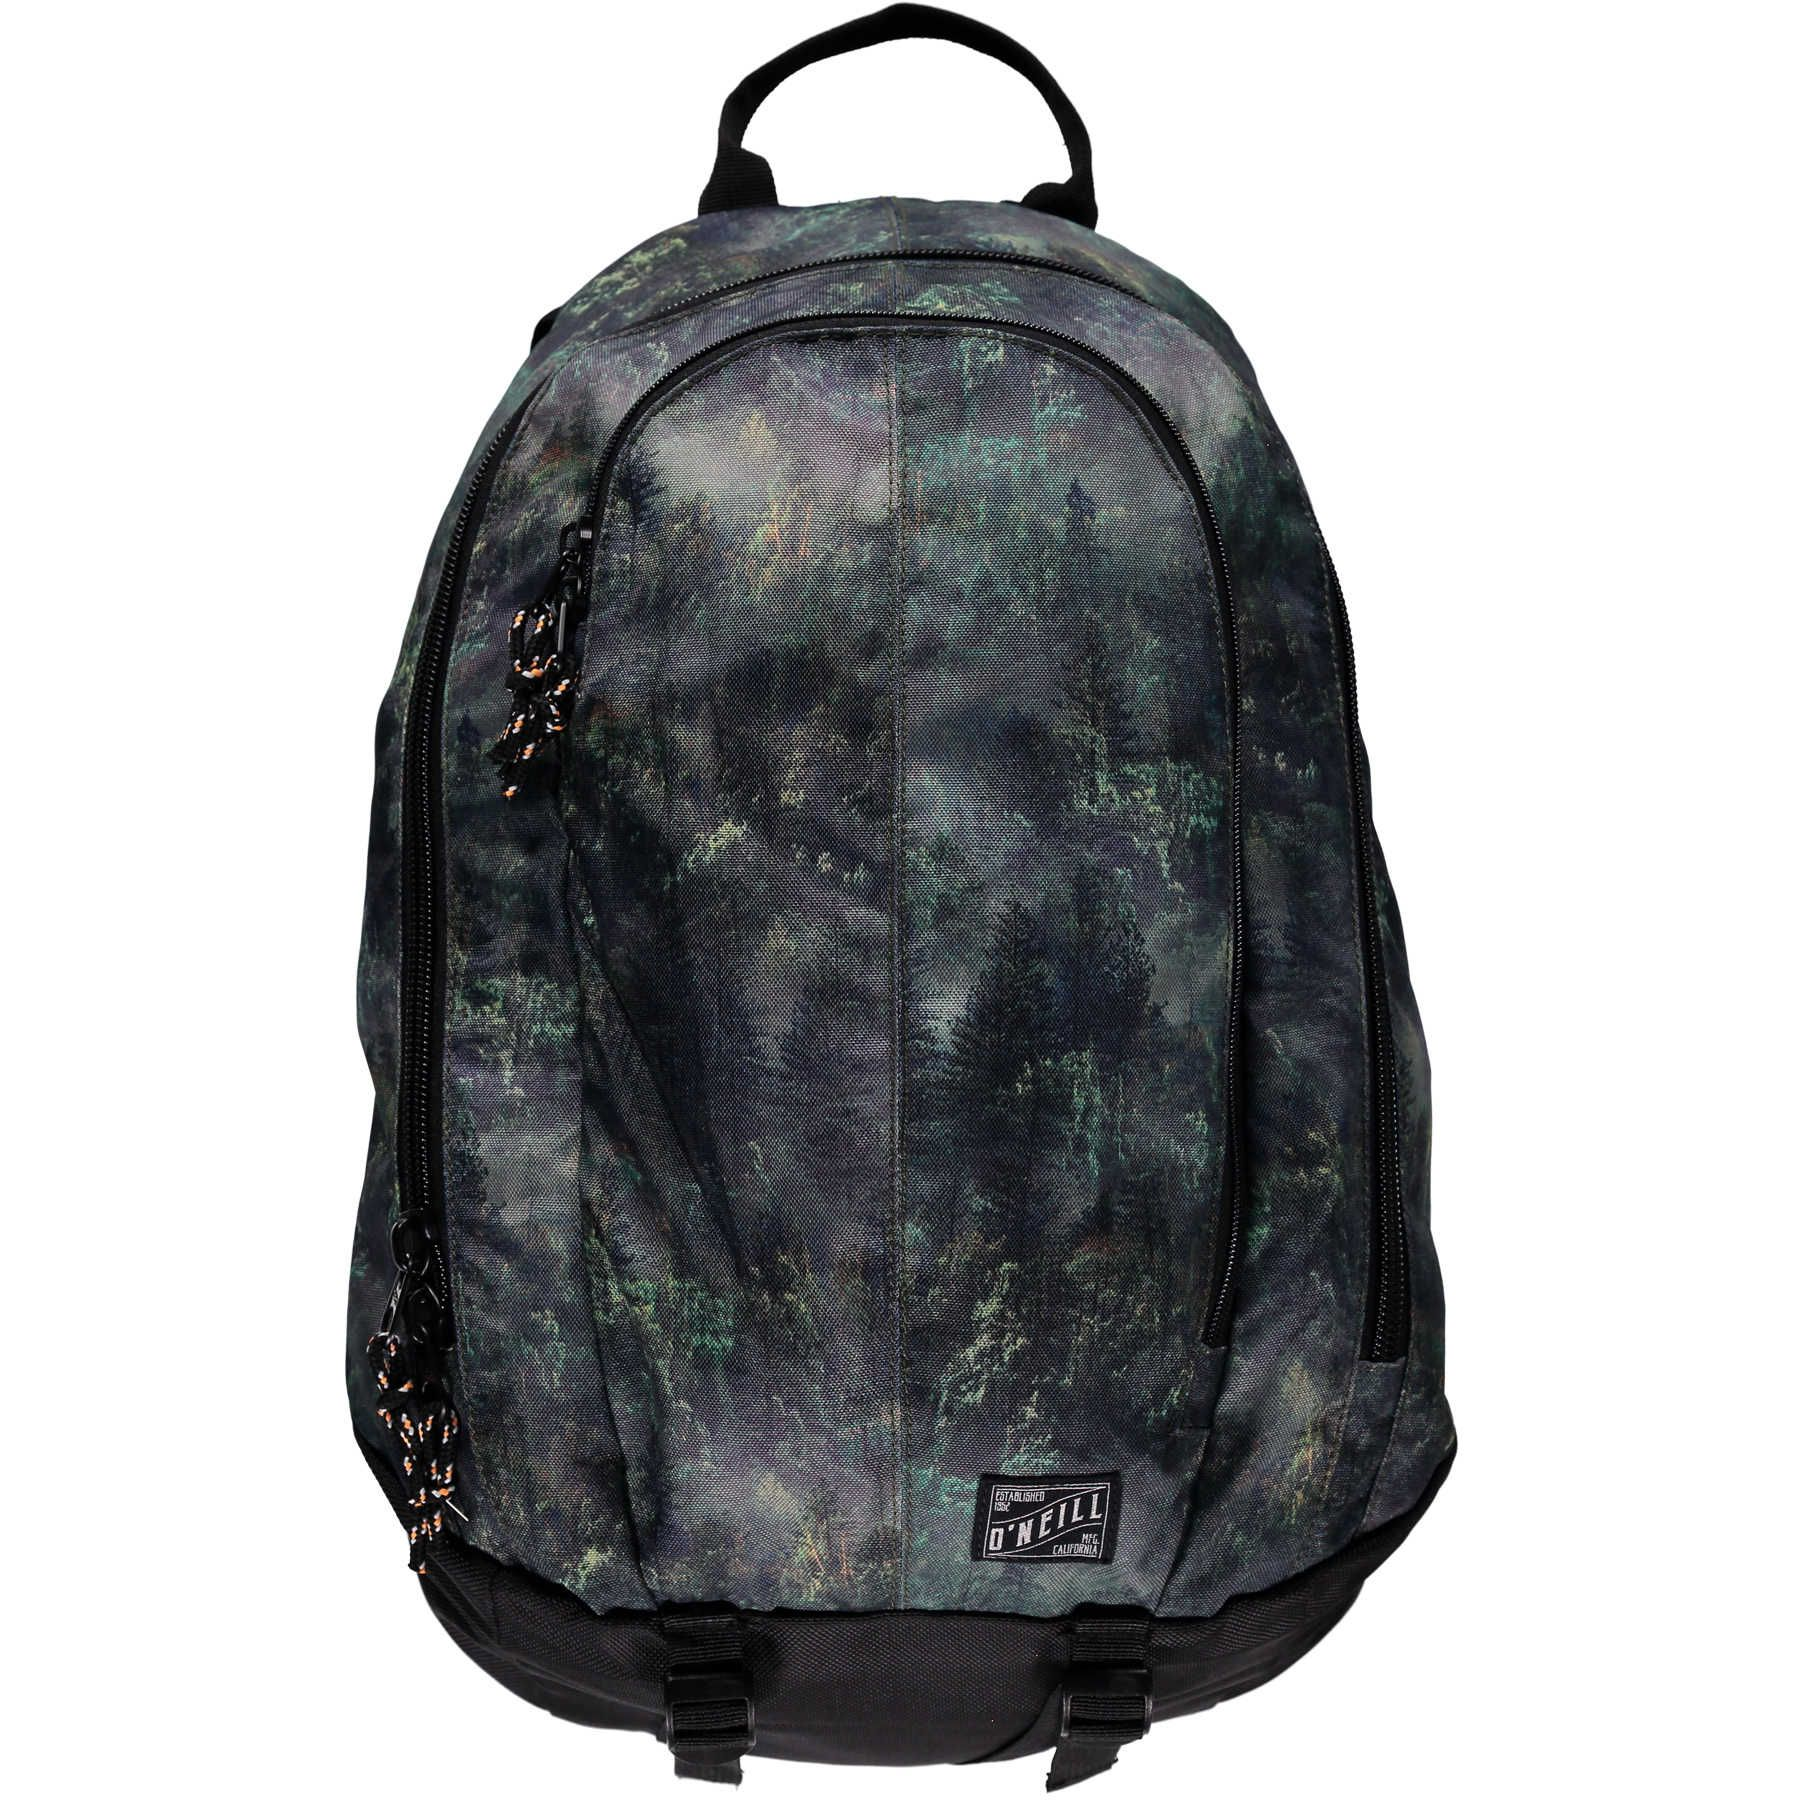 O'Neill Athletic Backpack, Green